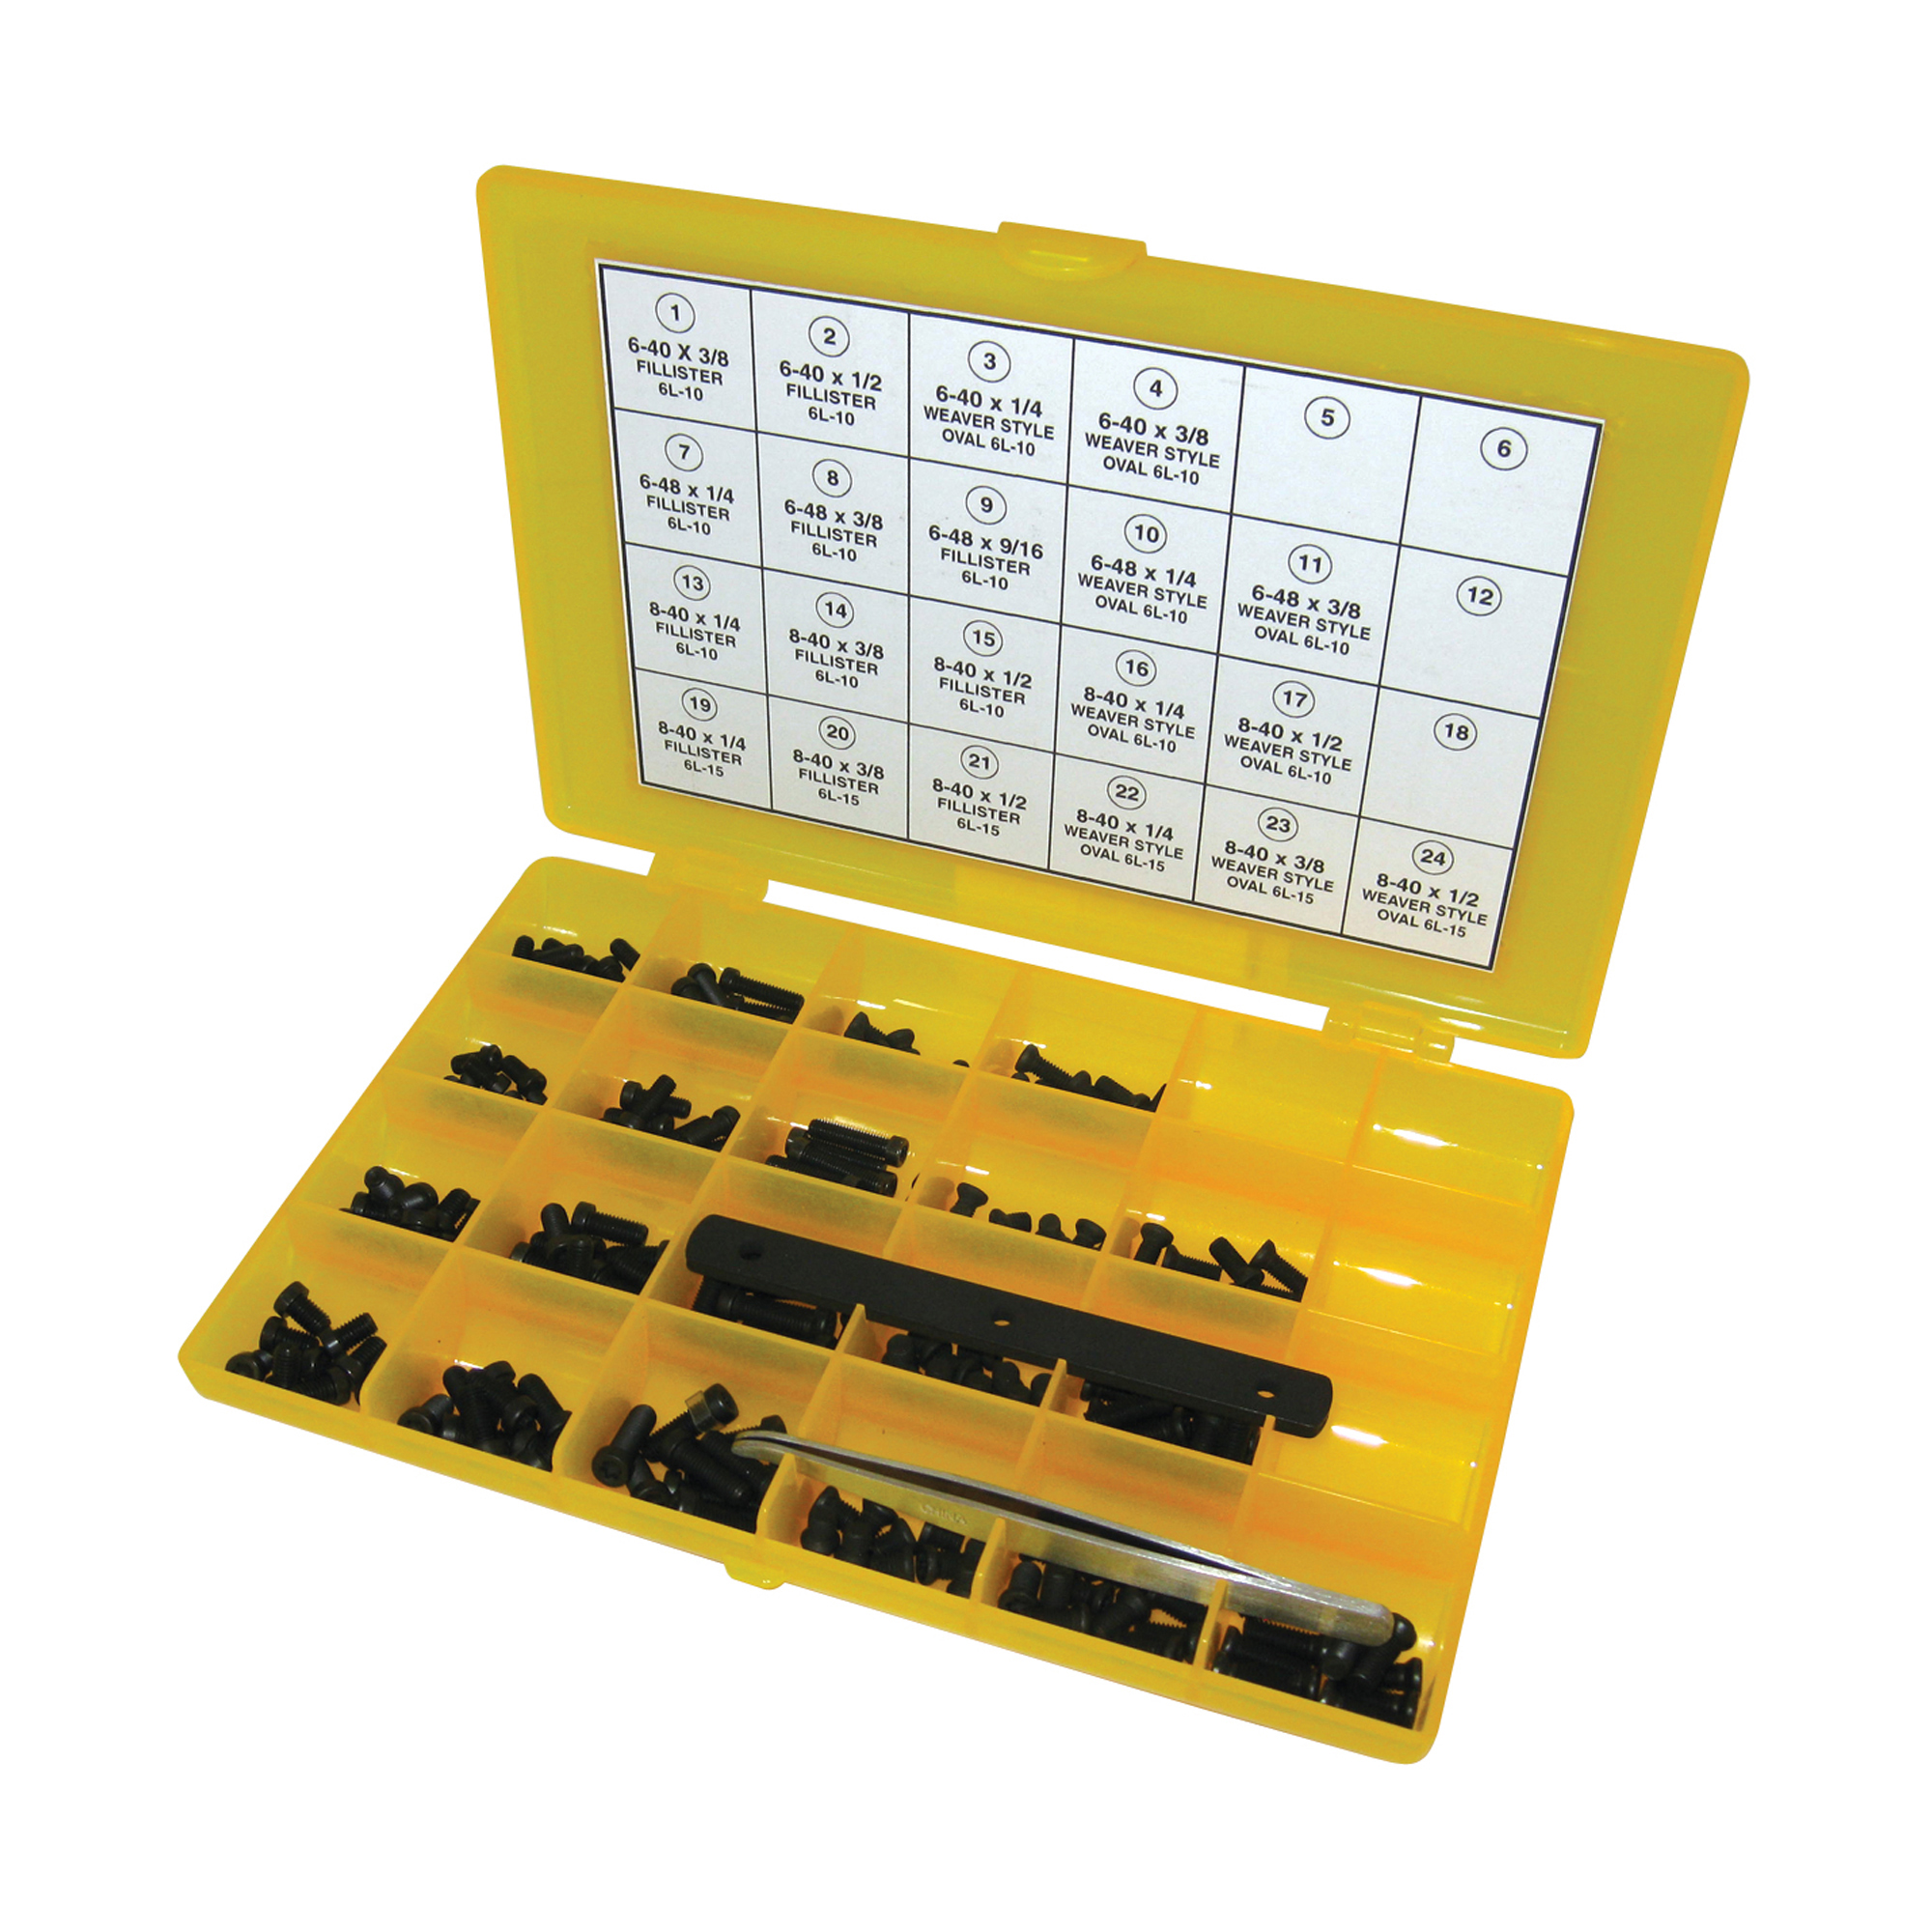 """These difficult to find screws are favored for their non-slip design. Packaged in a handy storage box with individual compartments for each size screw. Includes tweezers and a thread size gauge"""" which also doubles as a shortening jig used to grind a screw to a shorter length. Individual screws not available separately."""